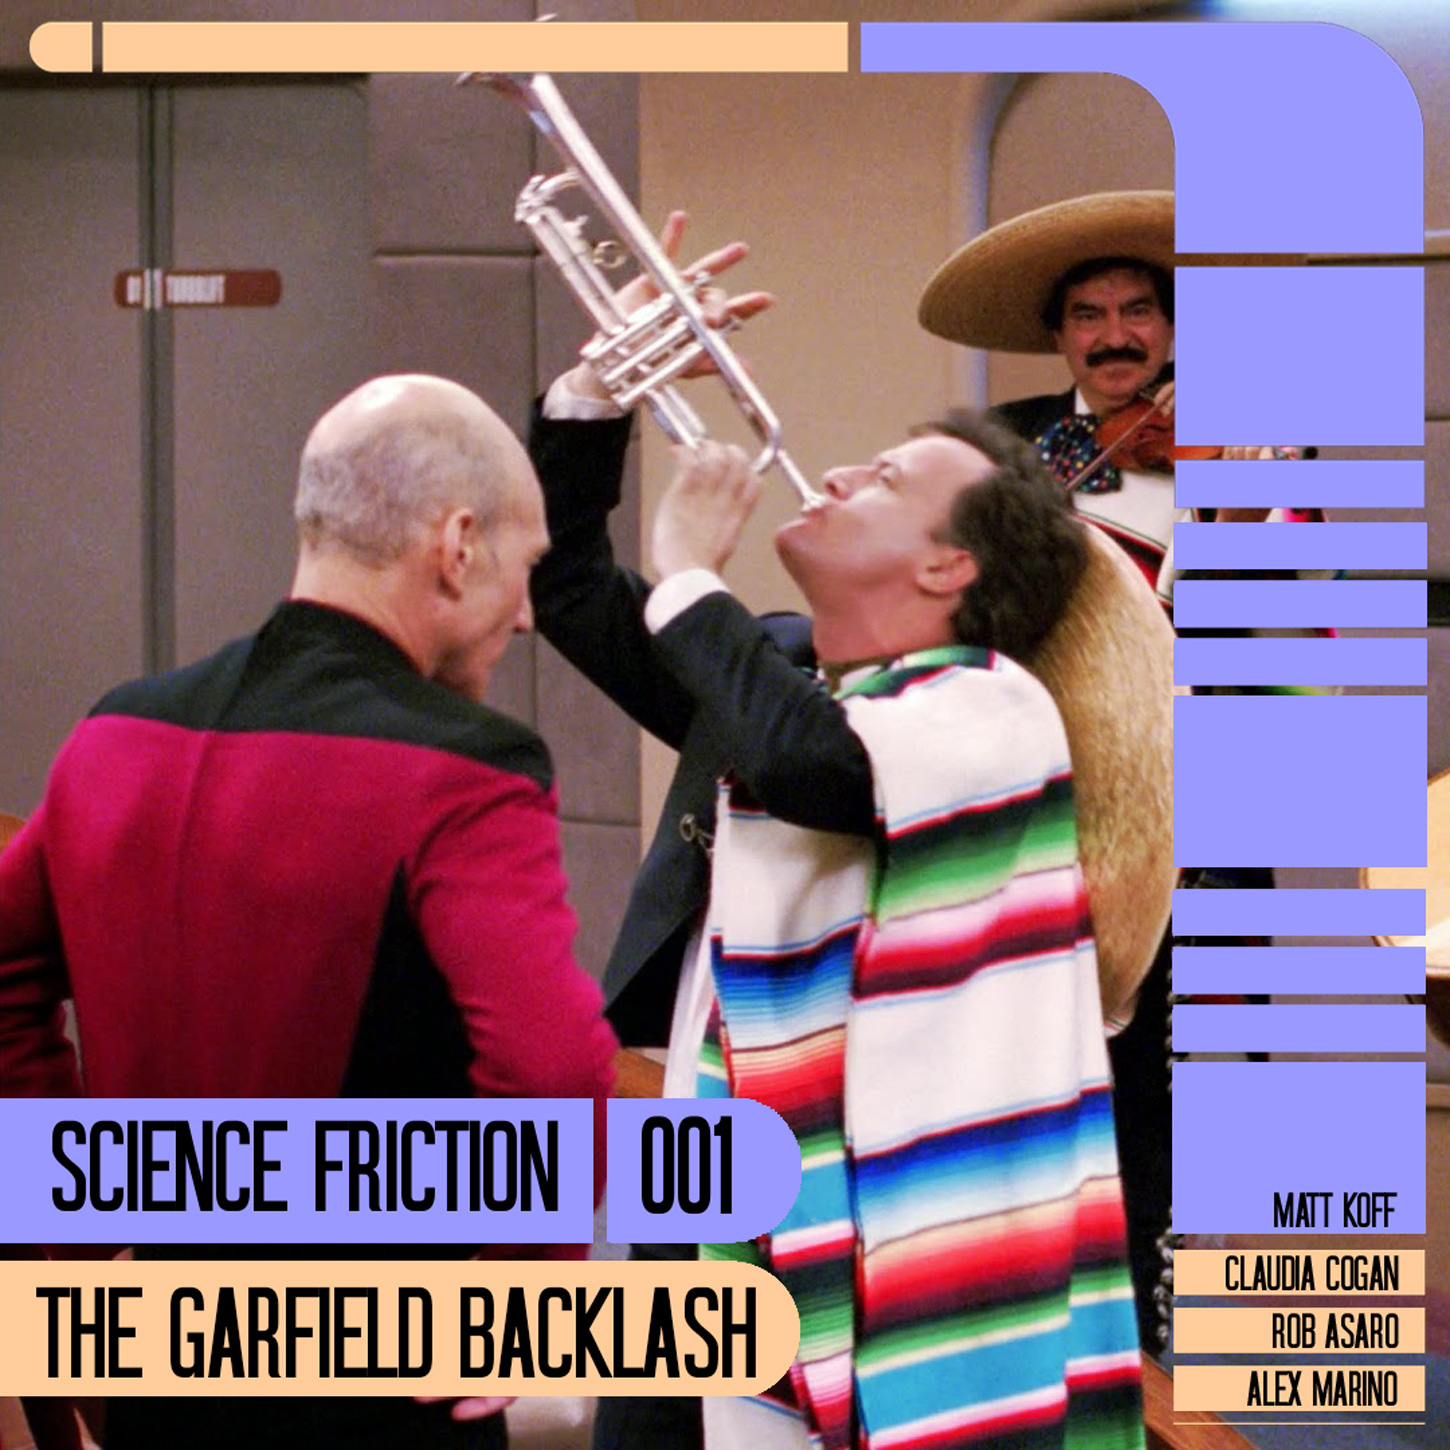 Science Friction 001: The Garfield Backlash